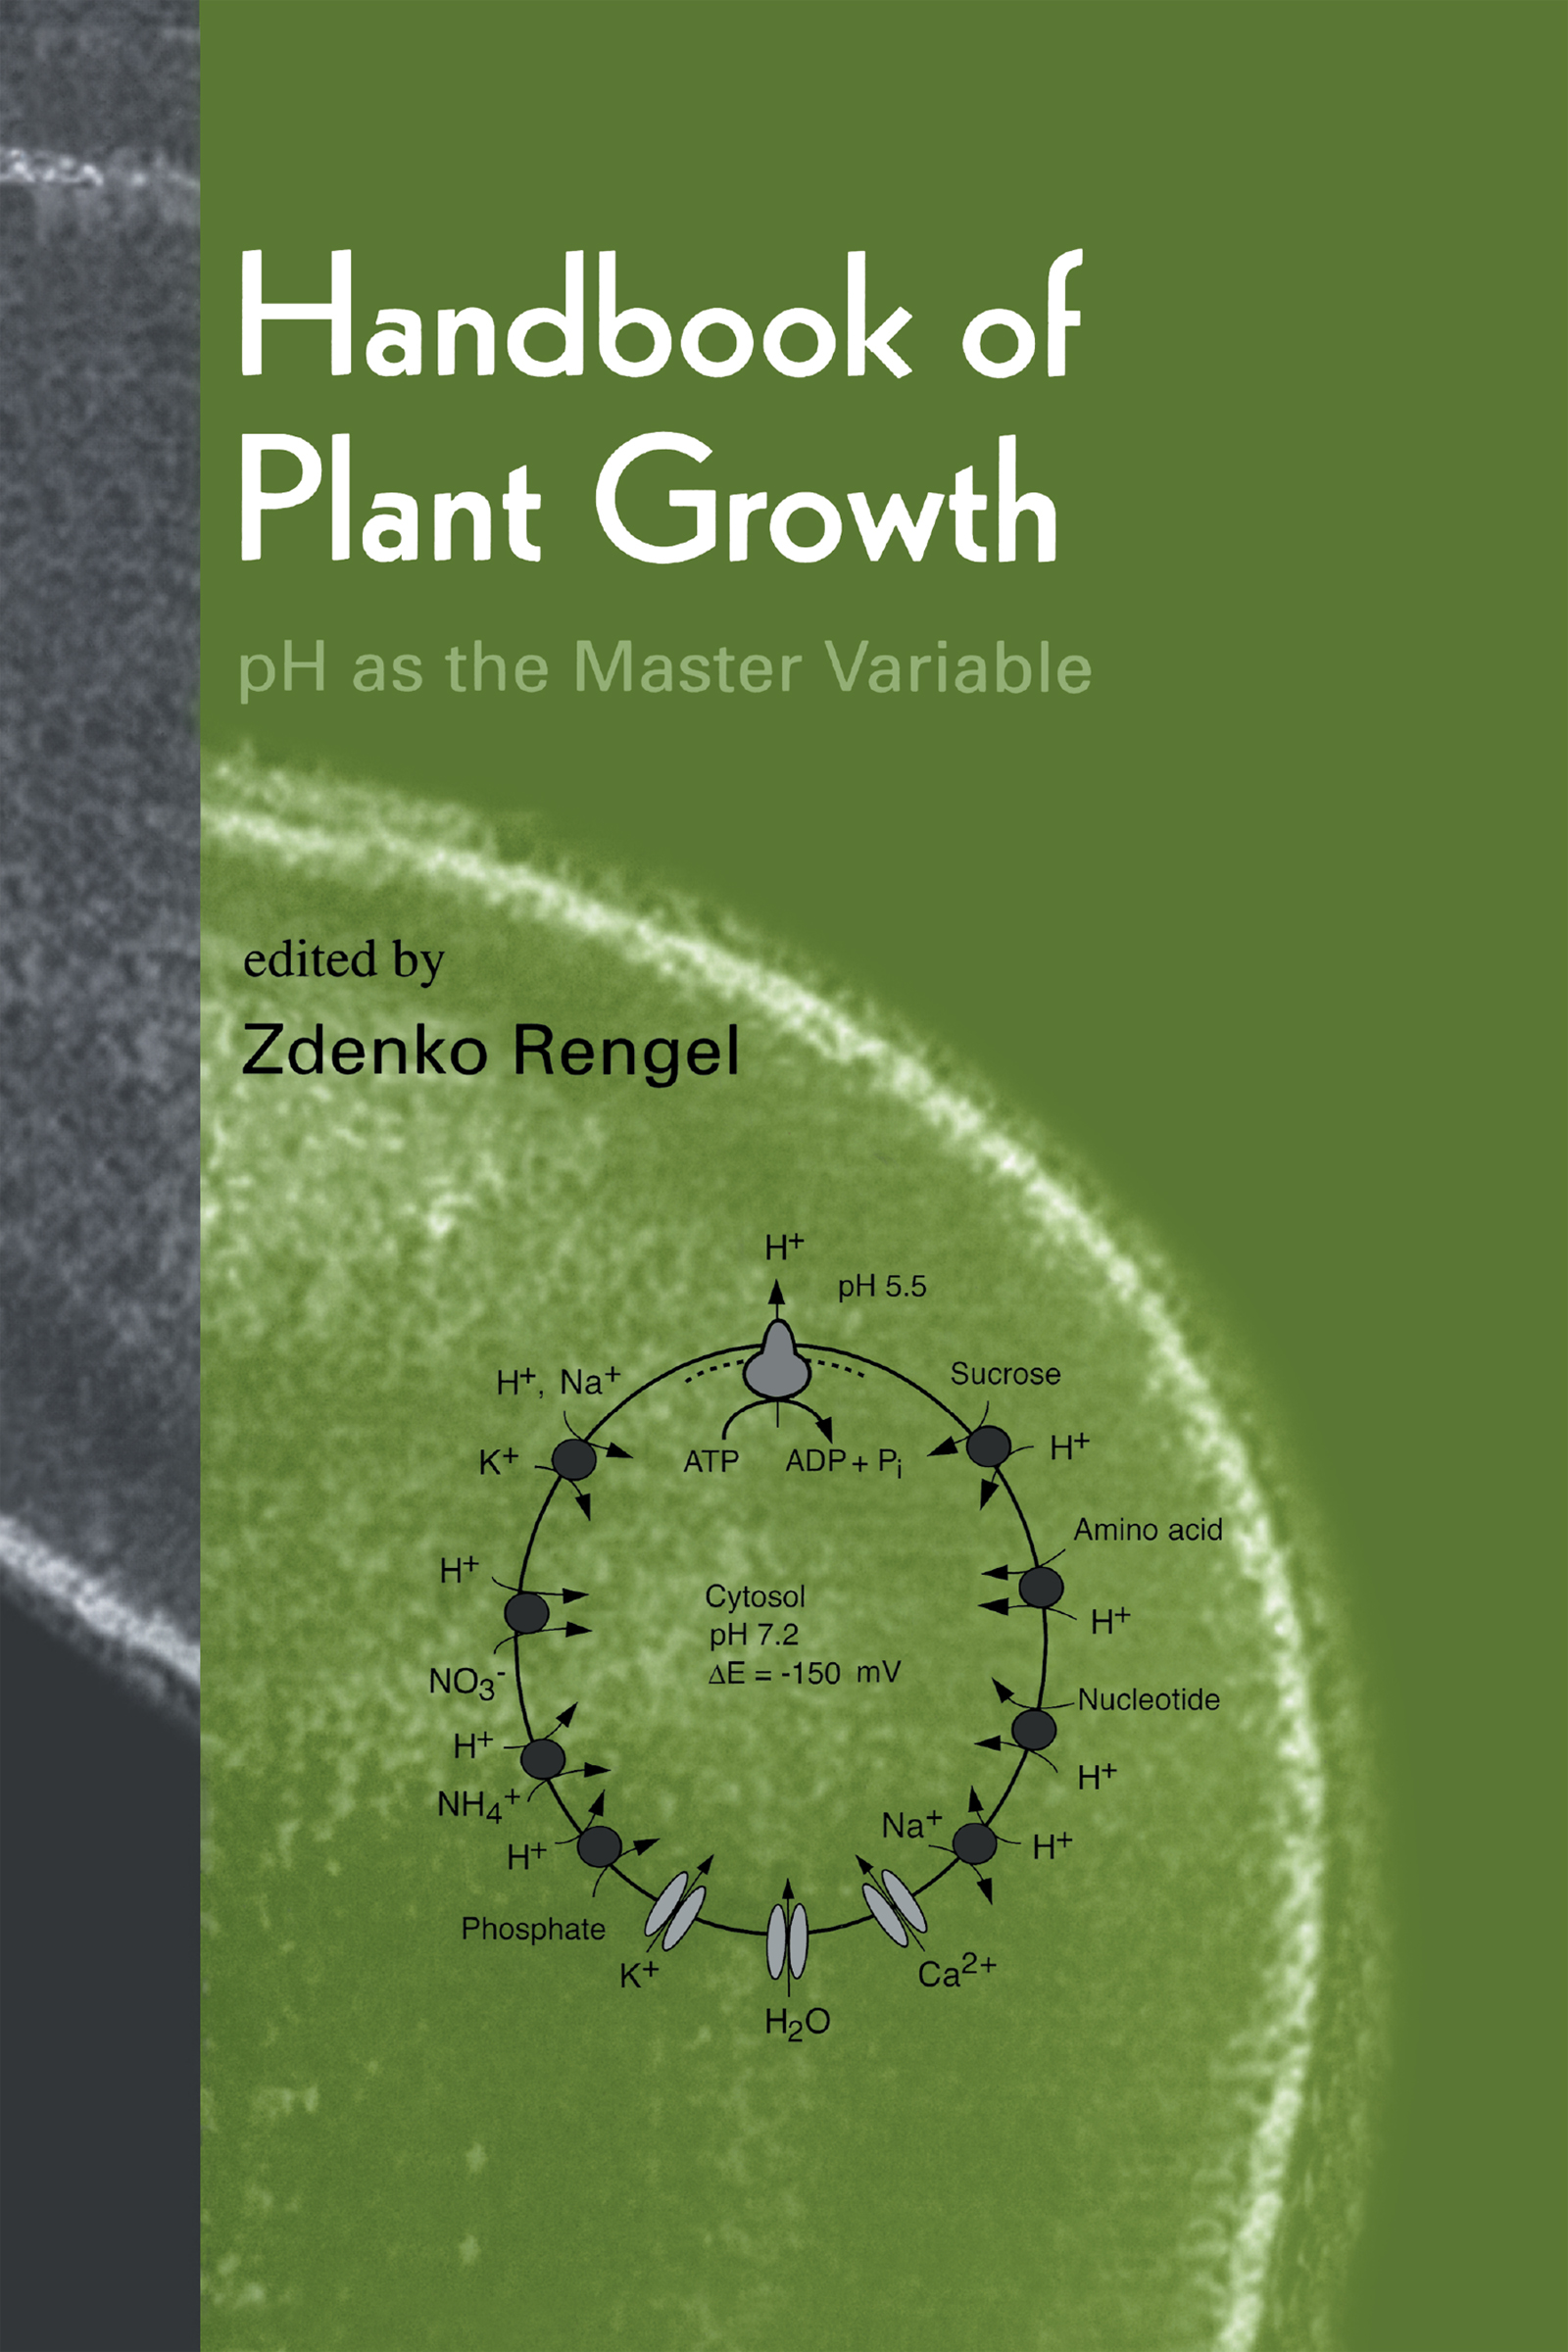 Confocal pH Topography in Plant Cells: Shifts of Proton Distribution Involved in Plant Signaling